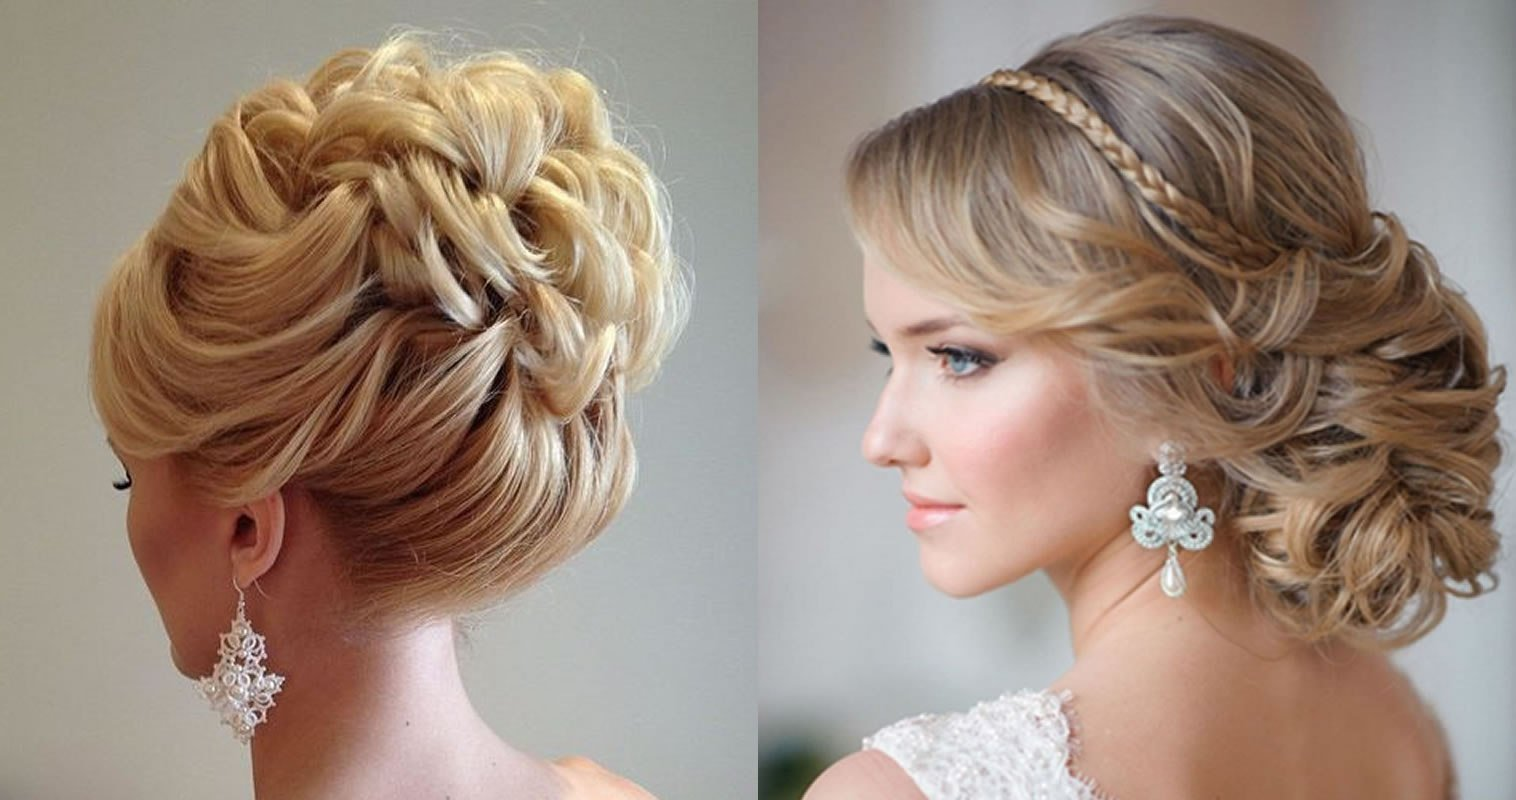 New Updo Wedding Hairstyles 2019 Hair Color Ideas For Bride Ideas With Pictures